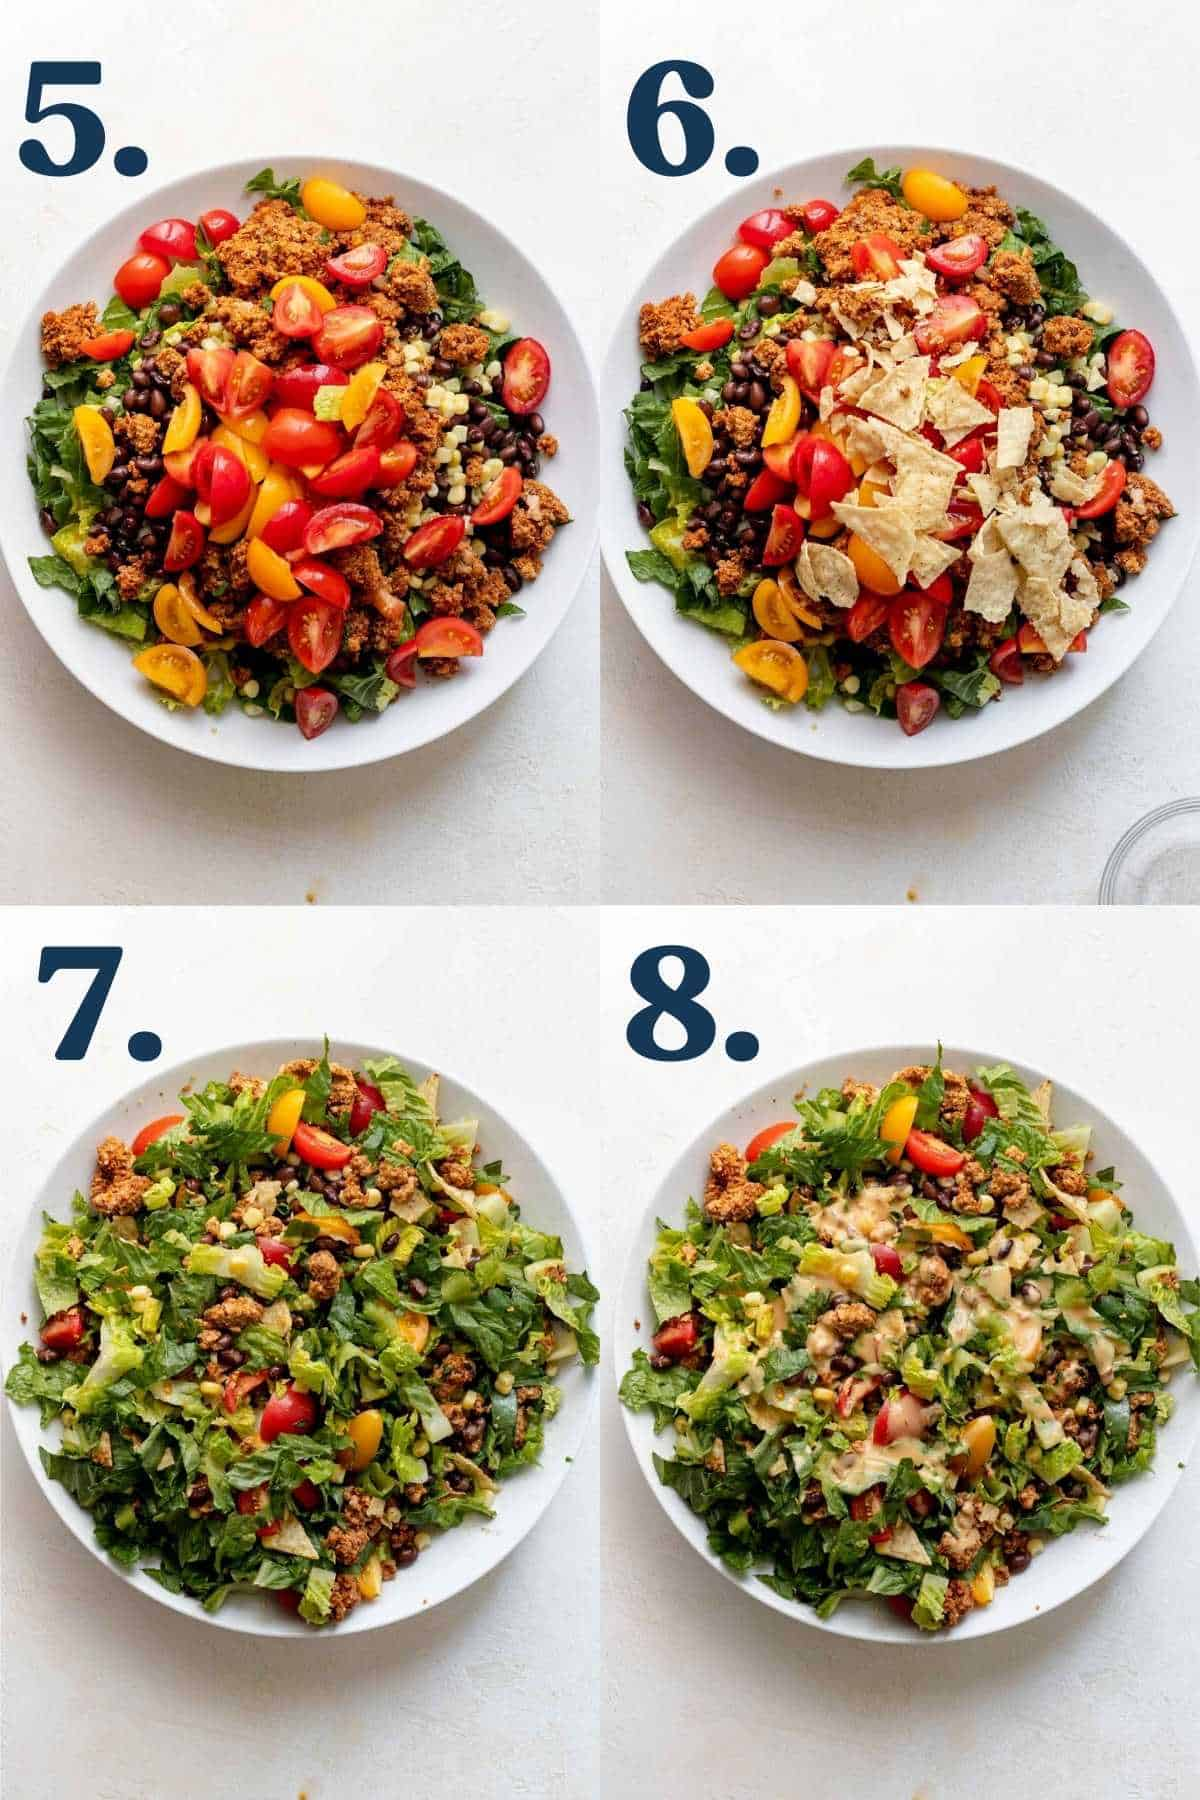 Step by step process of how to finish making the salad.